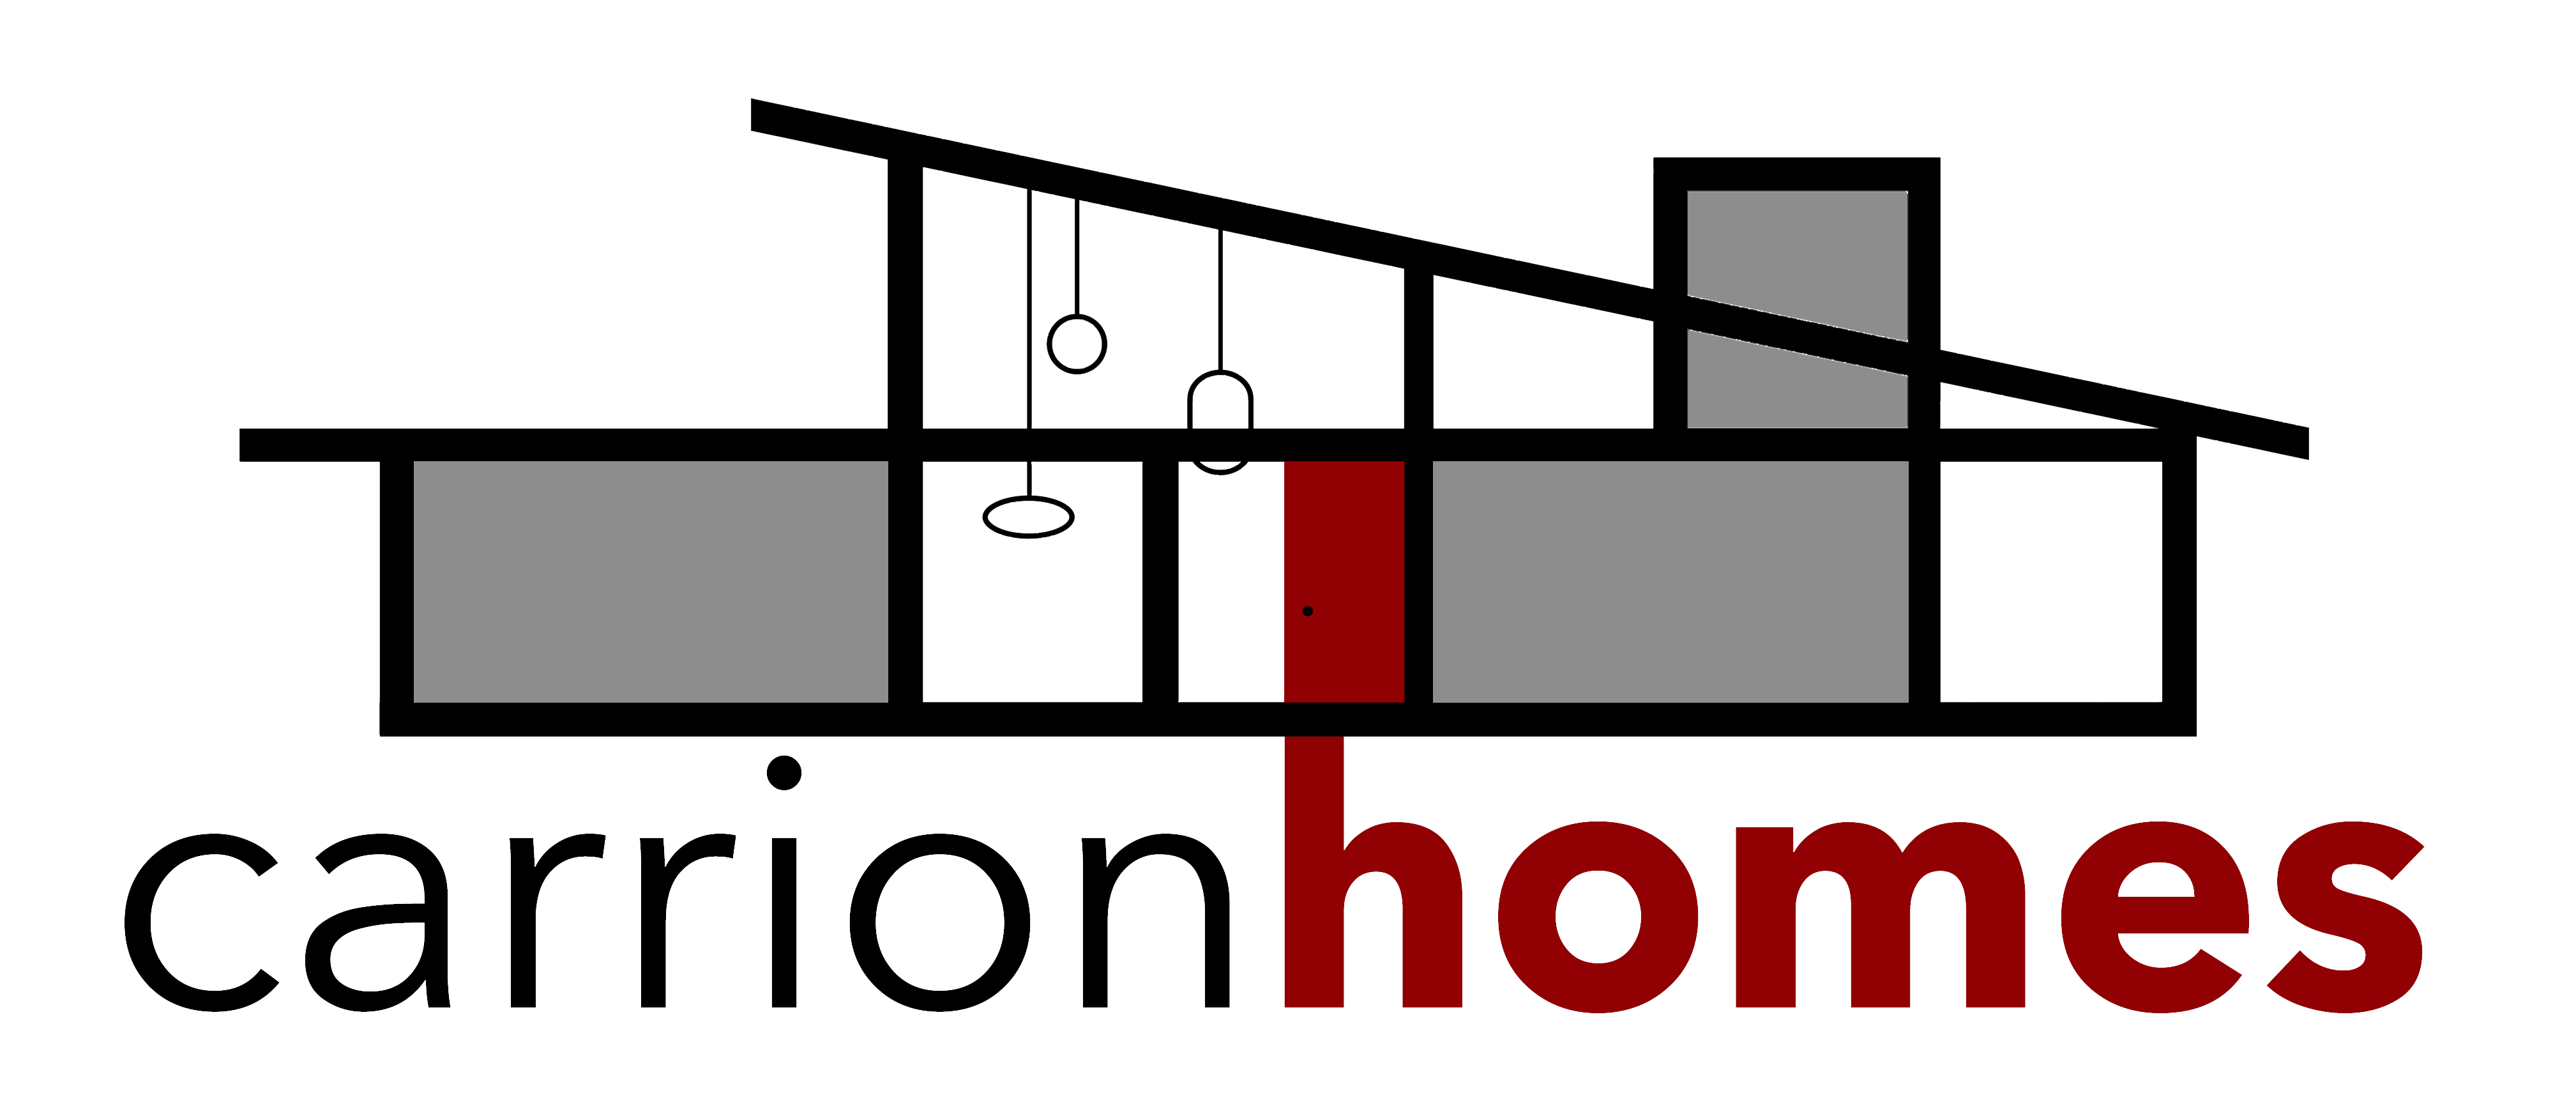 Carrion Homes